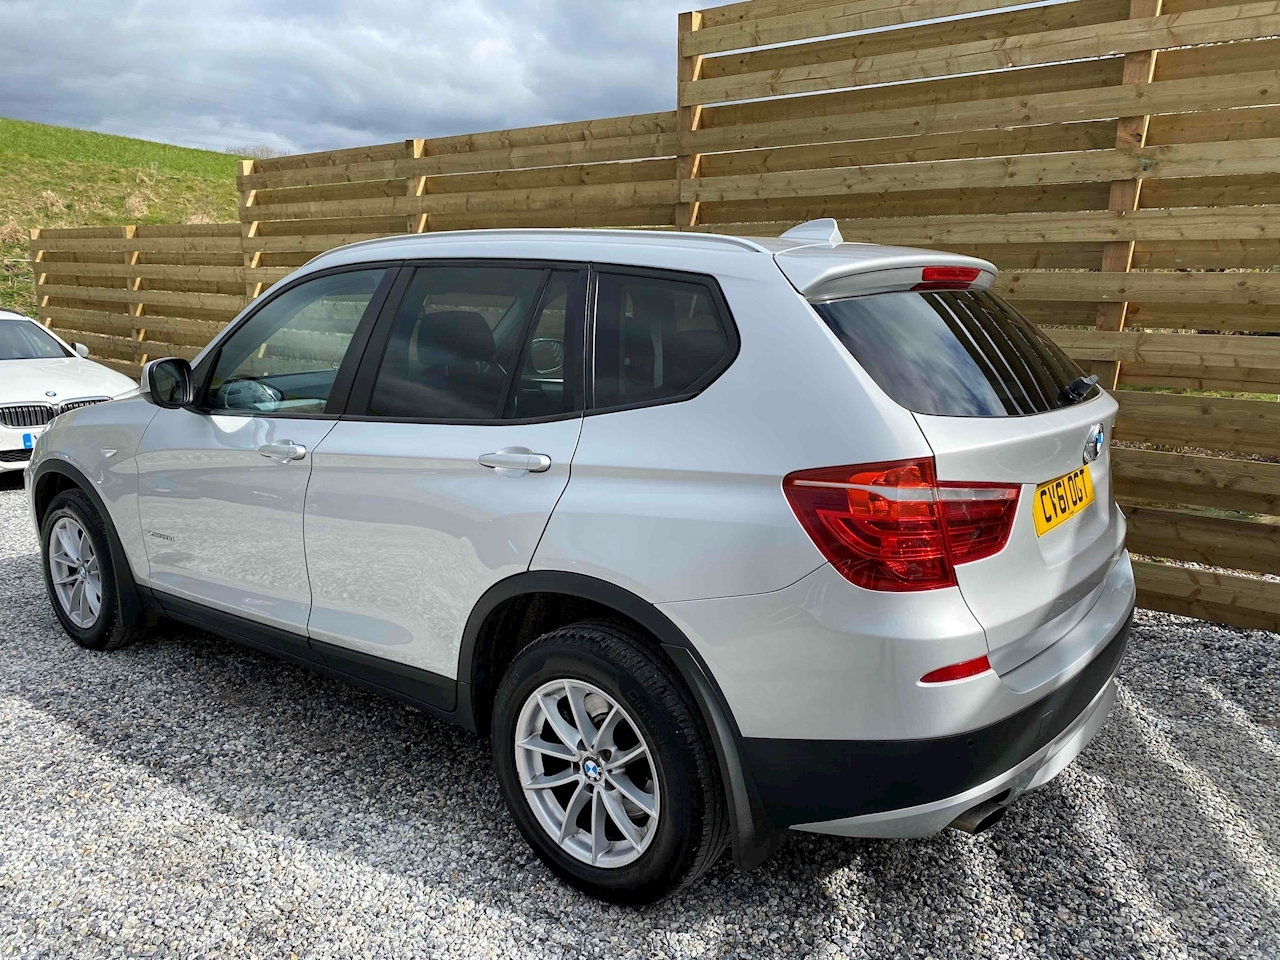 X3 20d SE - Nevada Leather - Privacy Glass - Full Service History 8 Completed 2.0 5dr SUV Manual Diesel